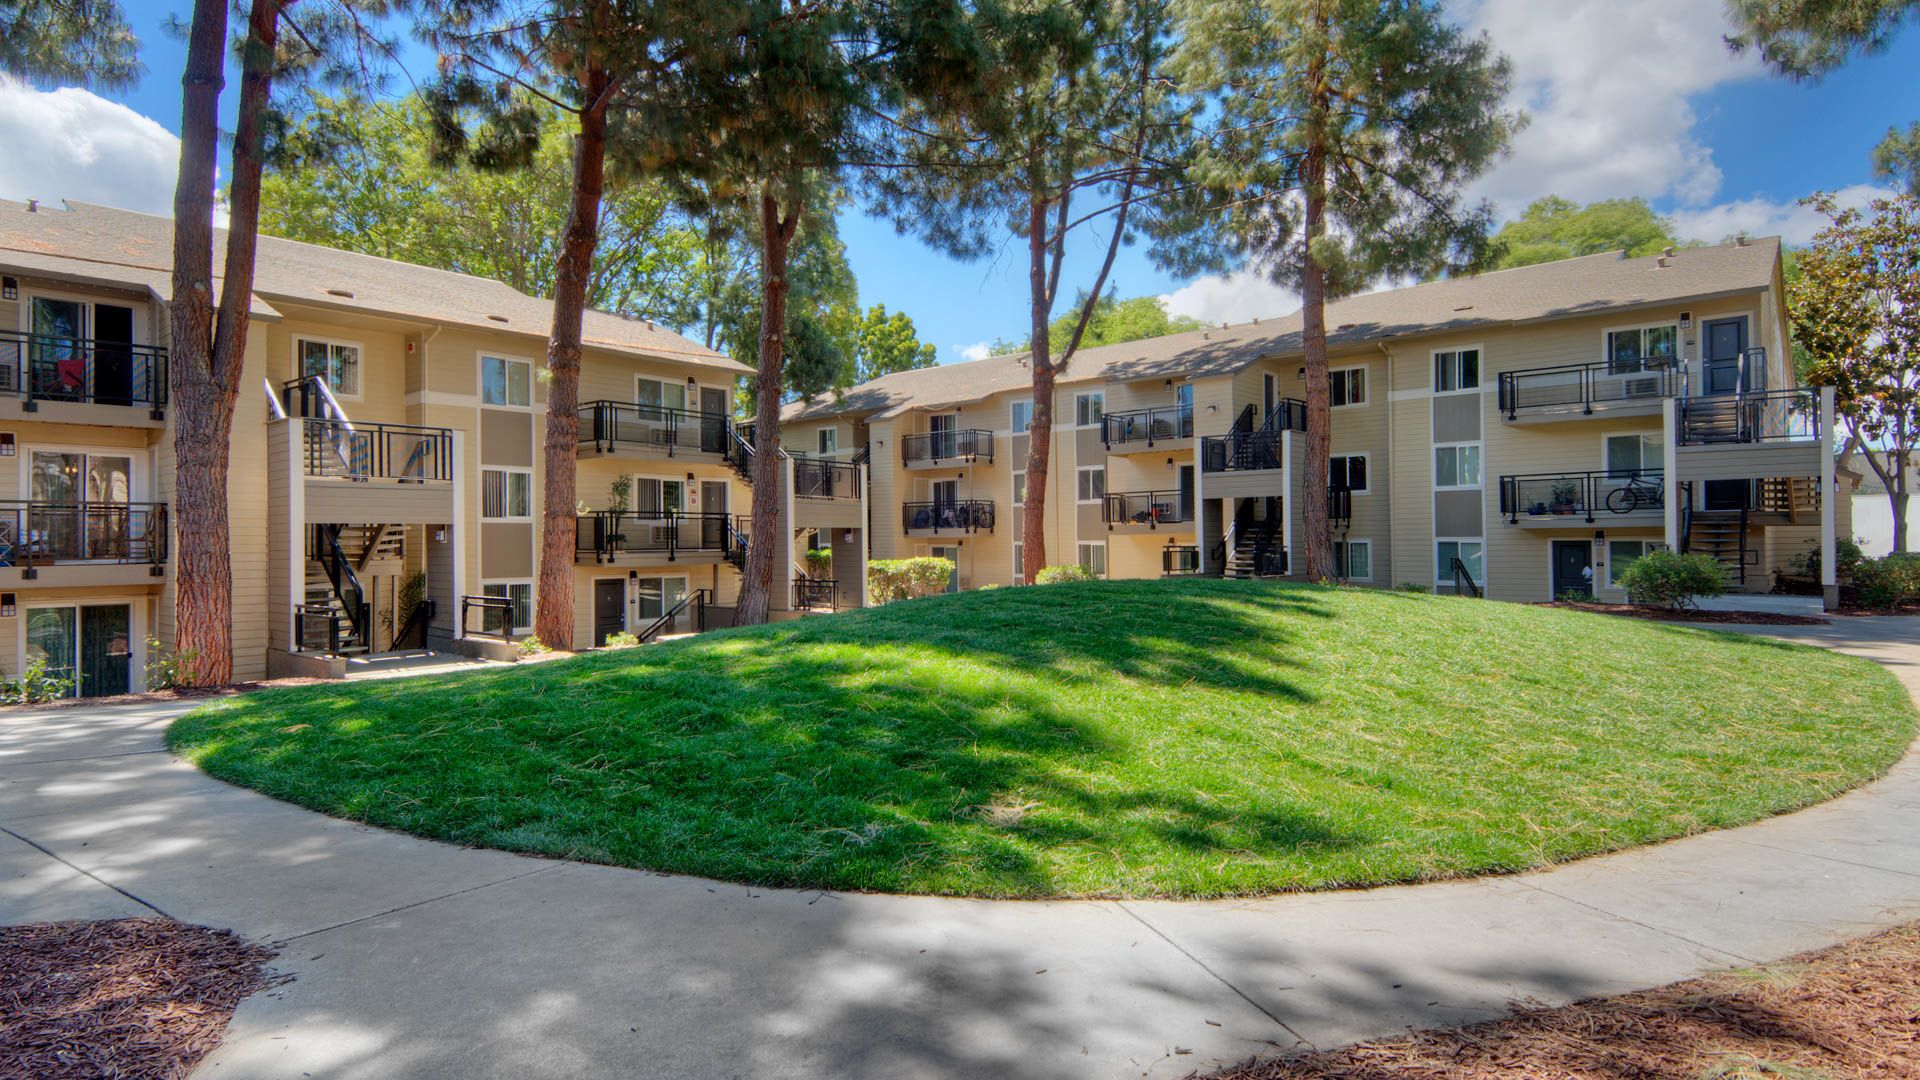 Arbor Terrace Apartments   Exterior Arbor Terrace Apartments   Exterior ...